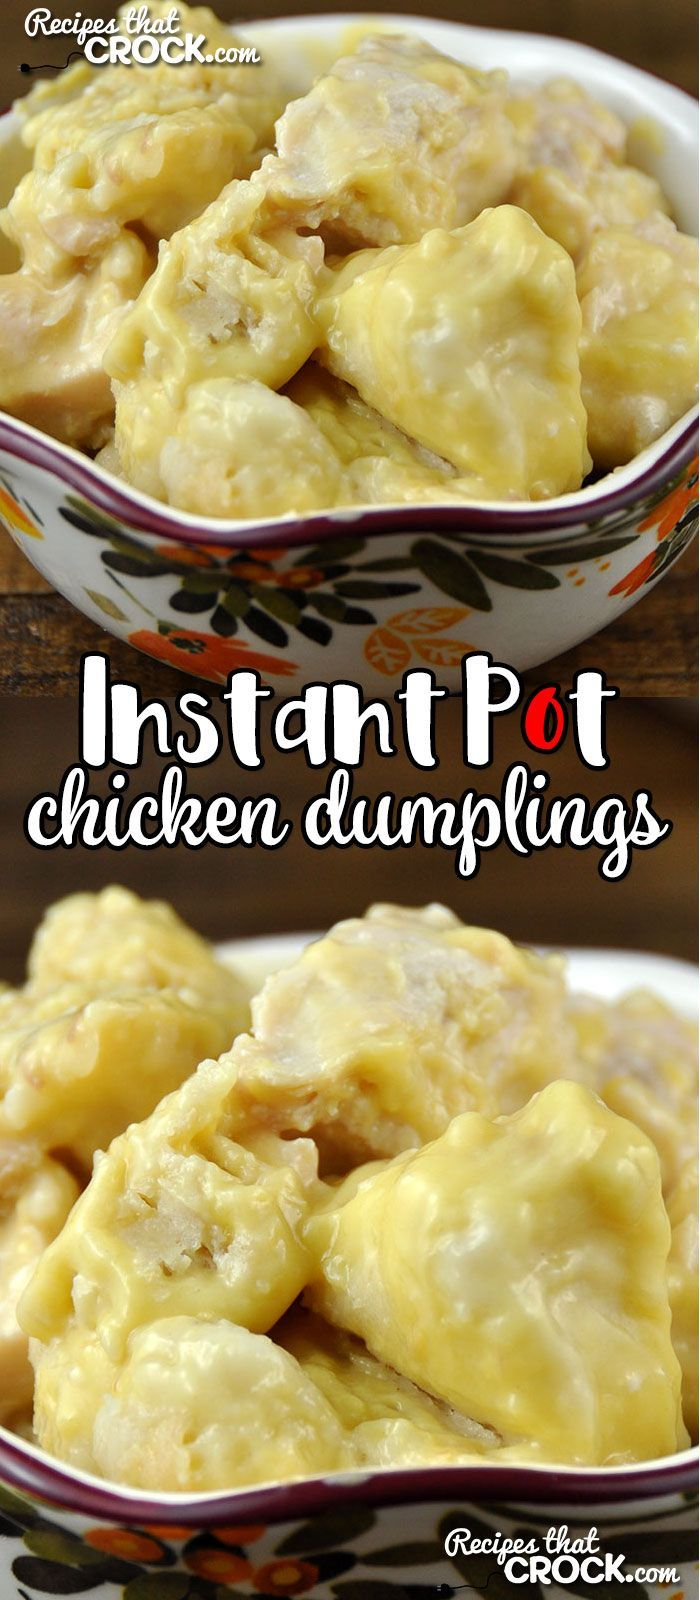 My dear readers, I have an awesome treat for you today! With this Instant Pot Chicken Dumplings recipe, you can have delicious chicken dumplings in a half hour flat!